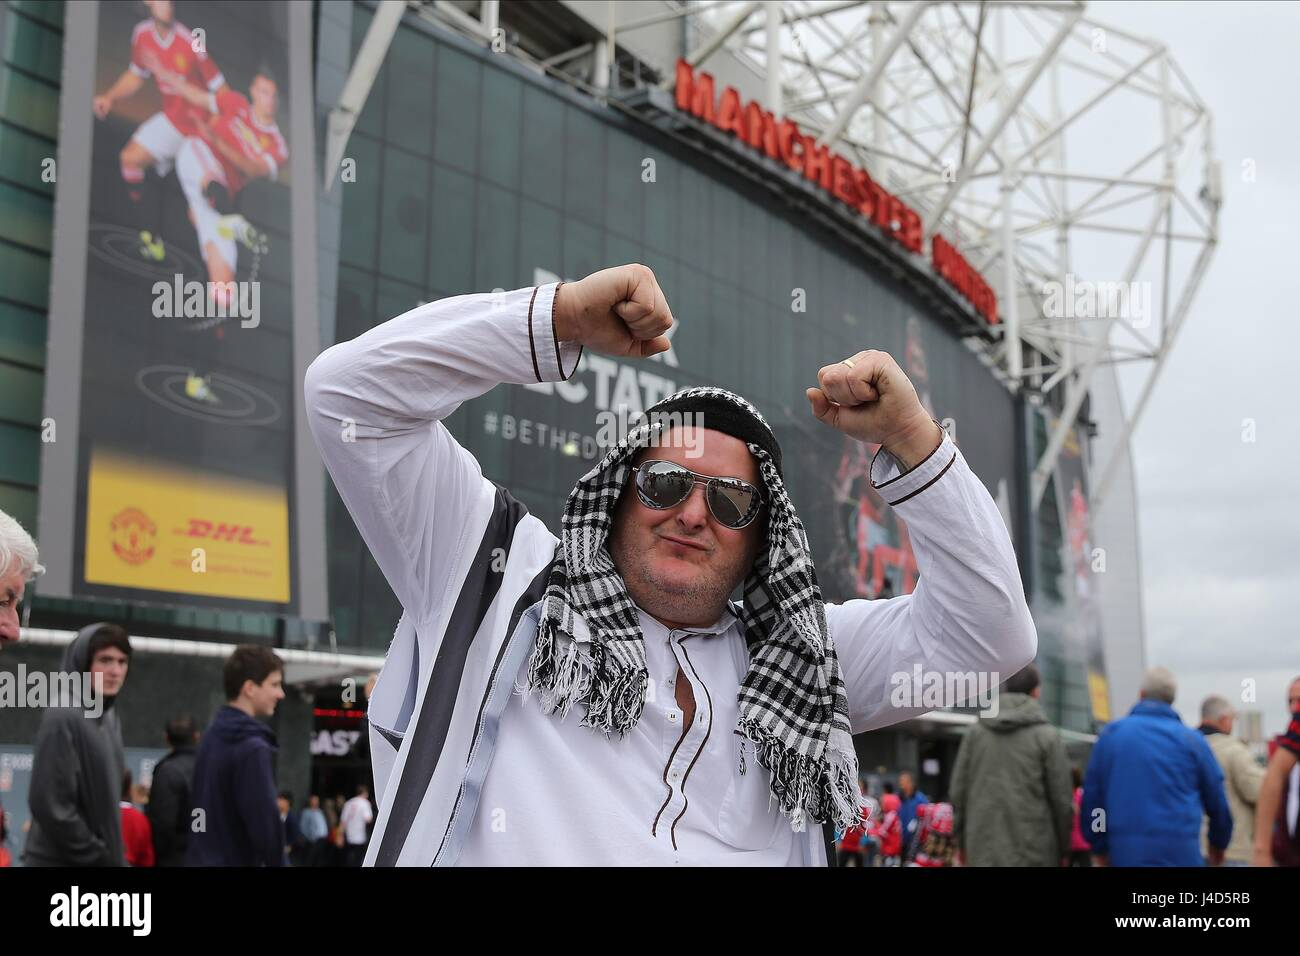 Newcastle to be sold aka Mole's favourite new thread - Page 7 Geordie-arab-newcastle-fan-manchester-united-fc-v-newcast-old-trafford-J4D5RB